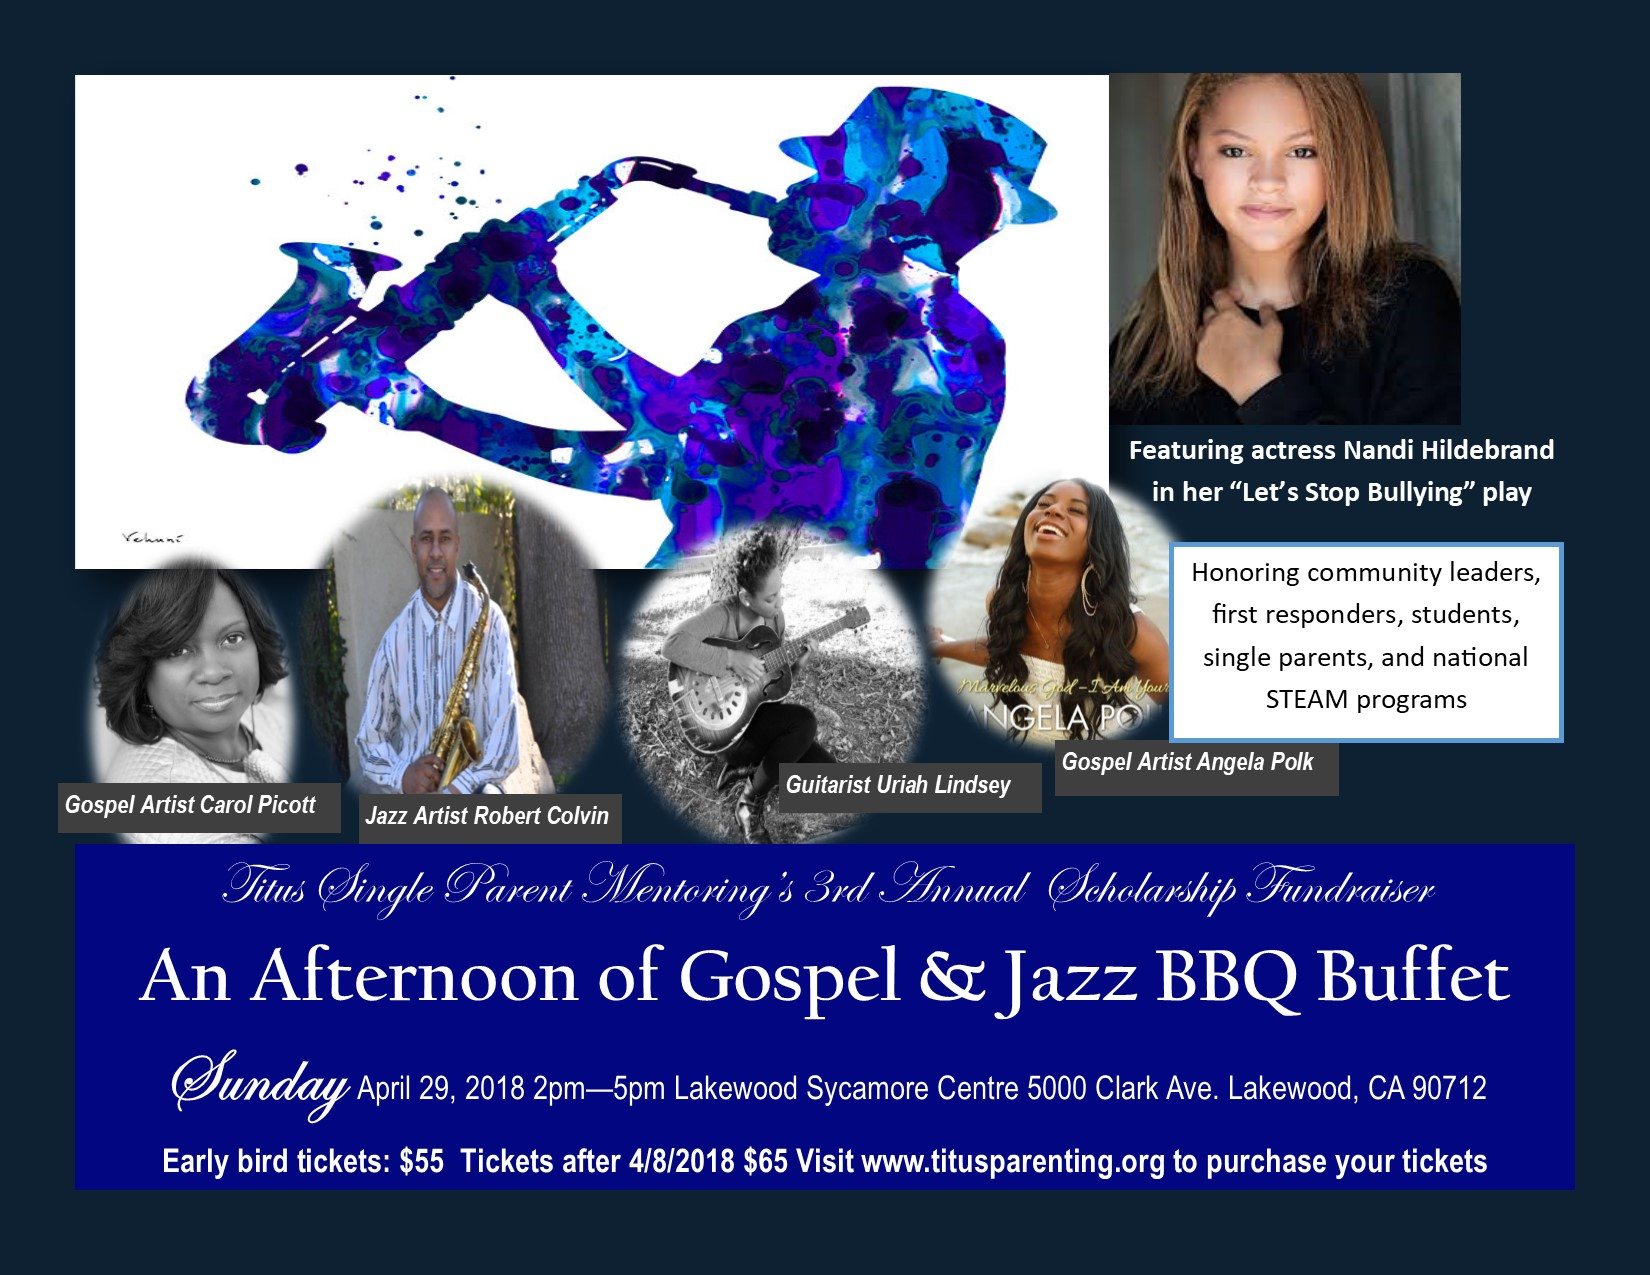 An Afternoon of Gospel & Jazz and BBQ Buffet